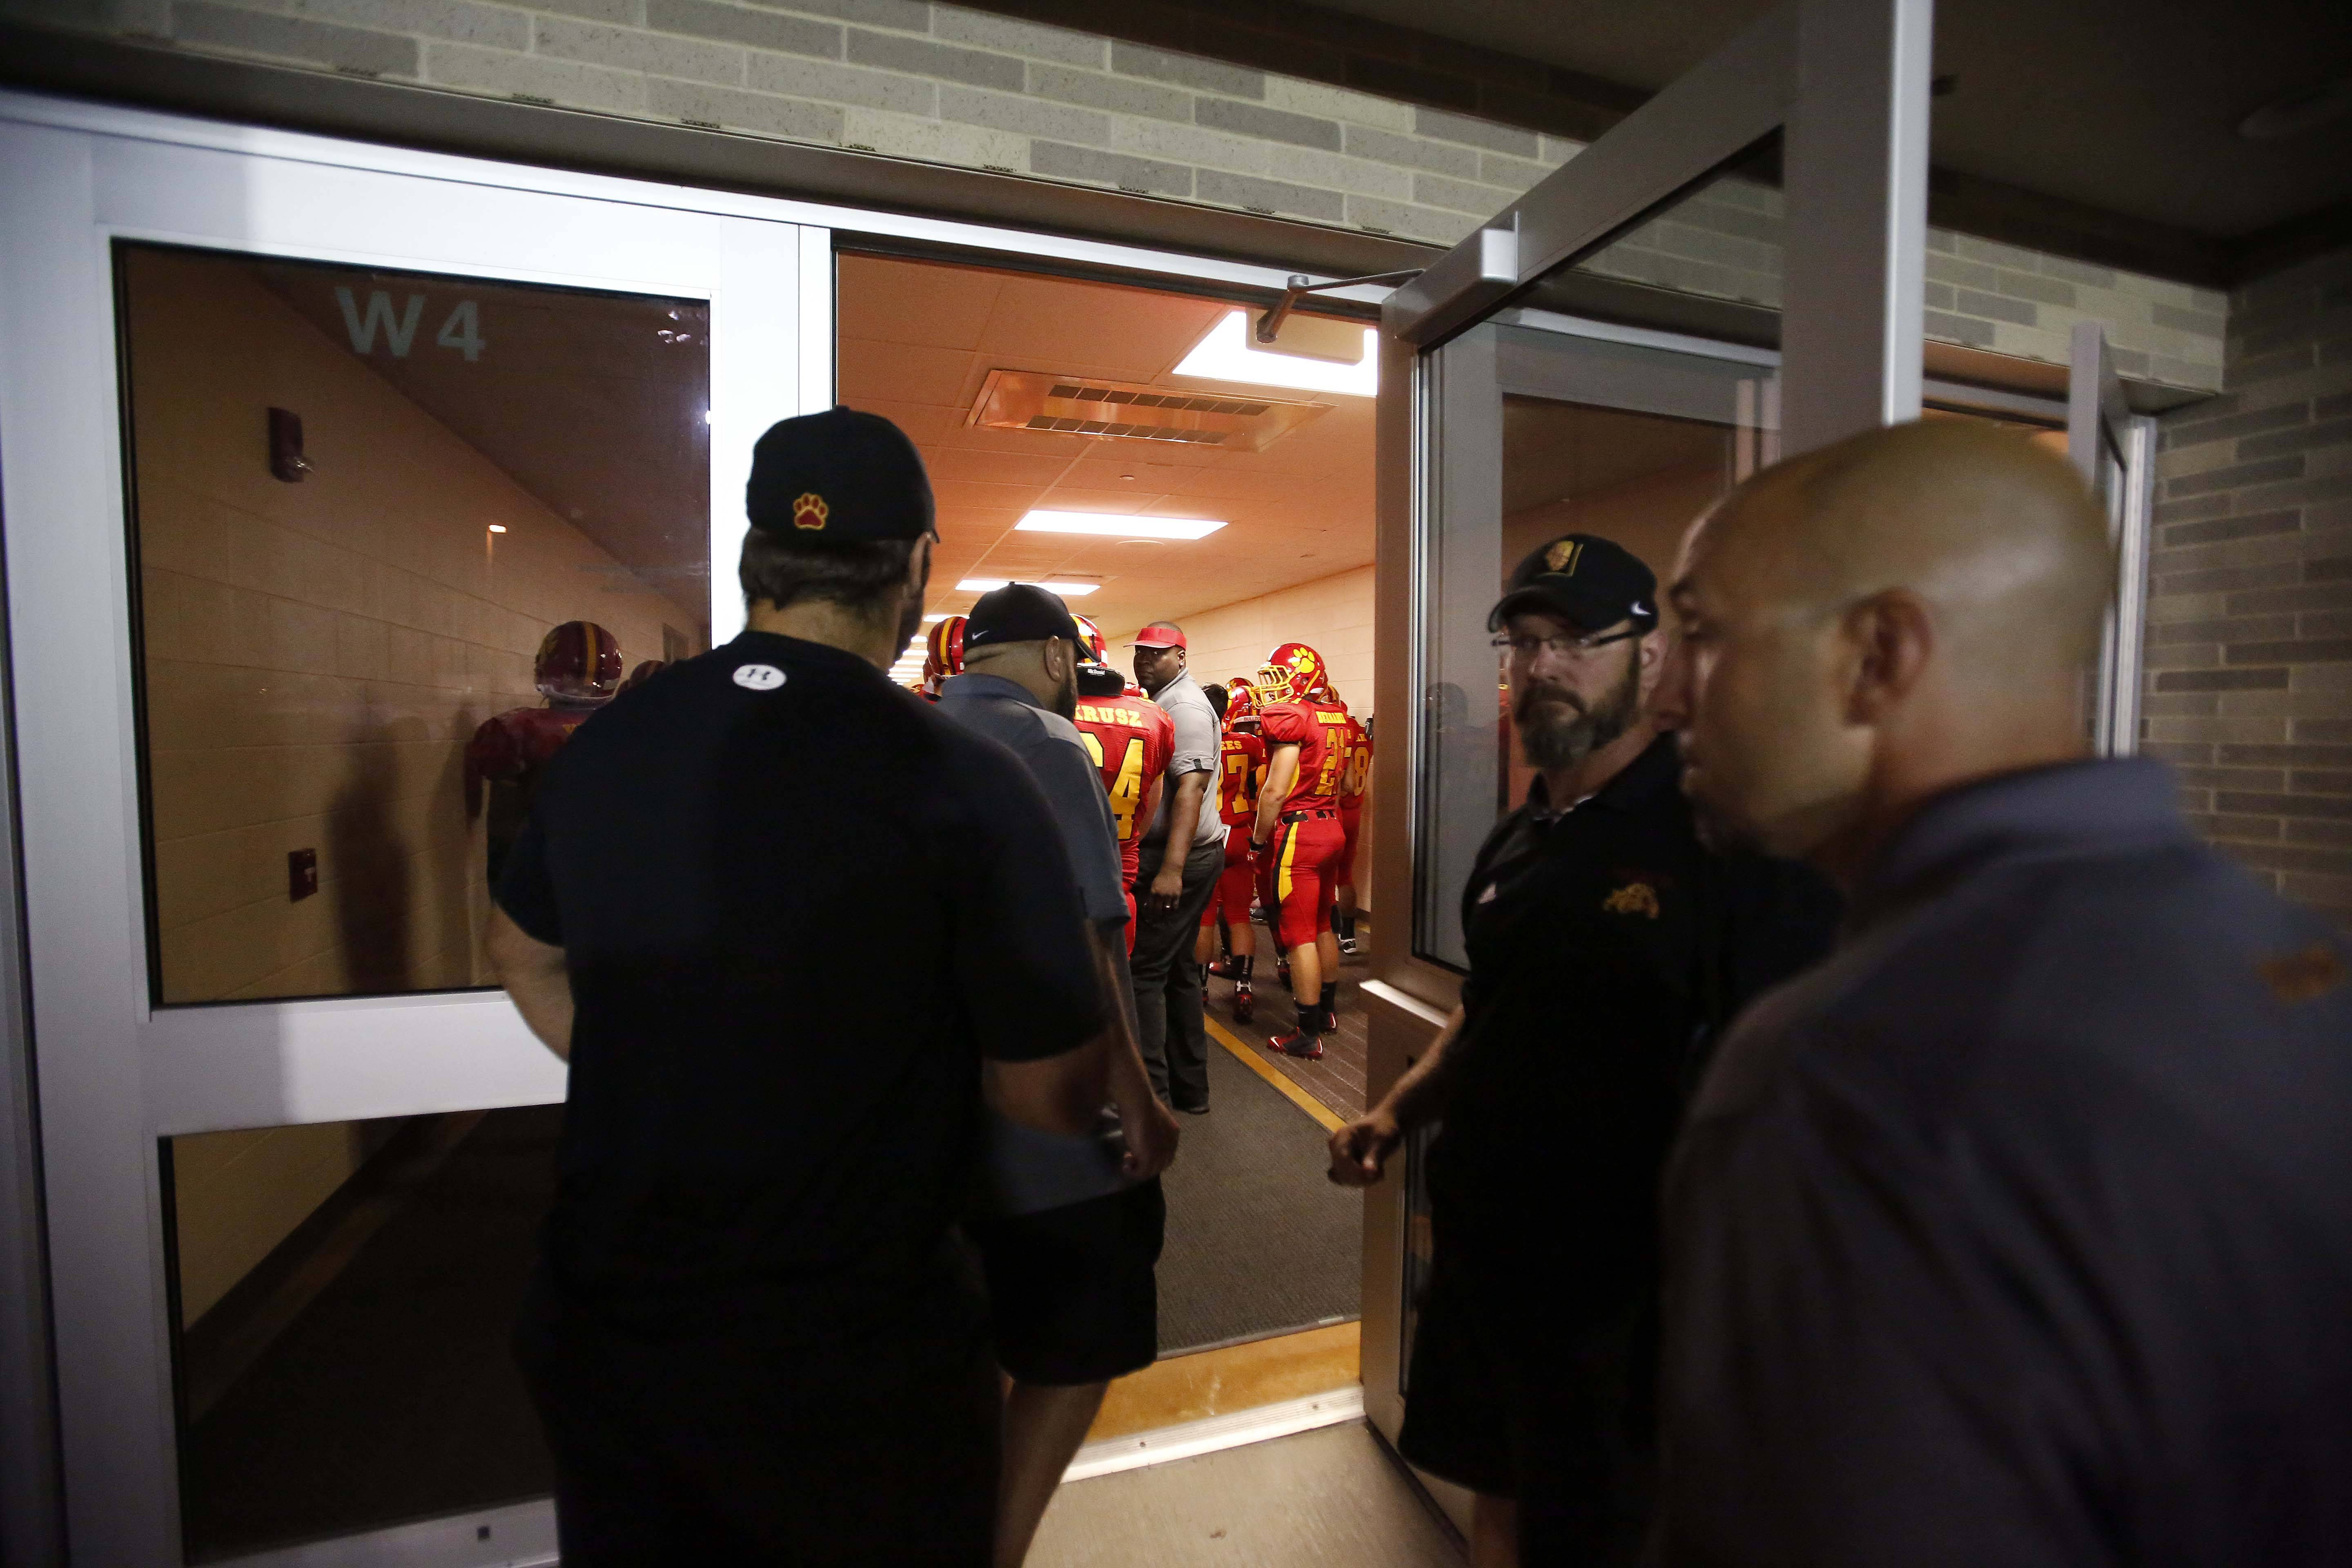 Coaches head in to the locker room after the game was postponed.